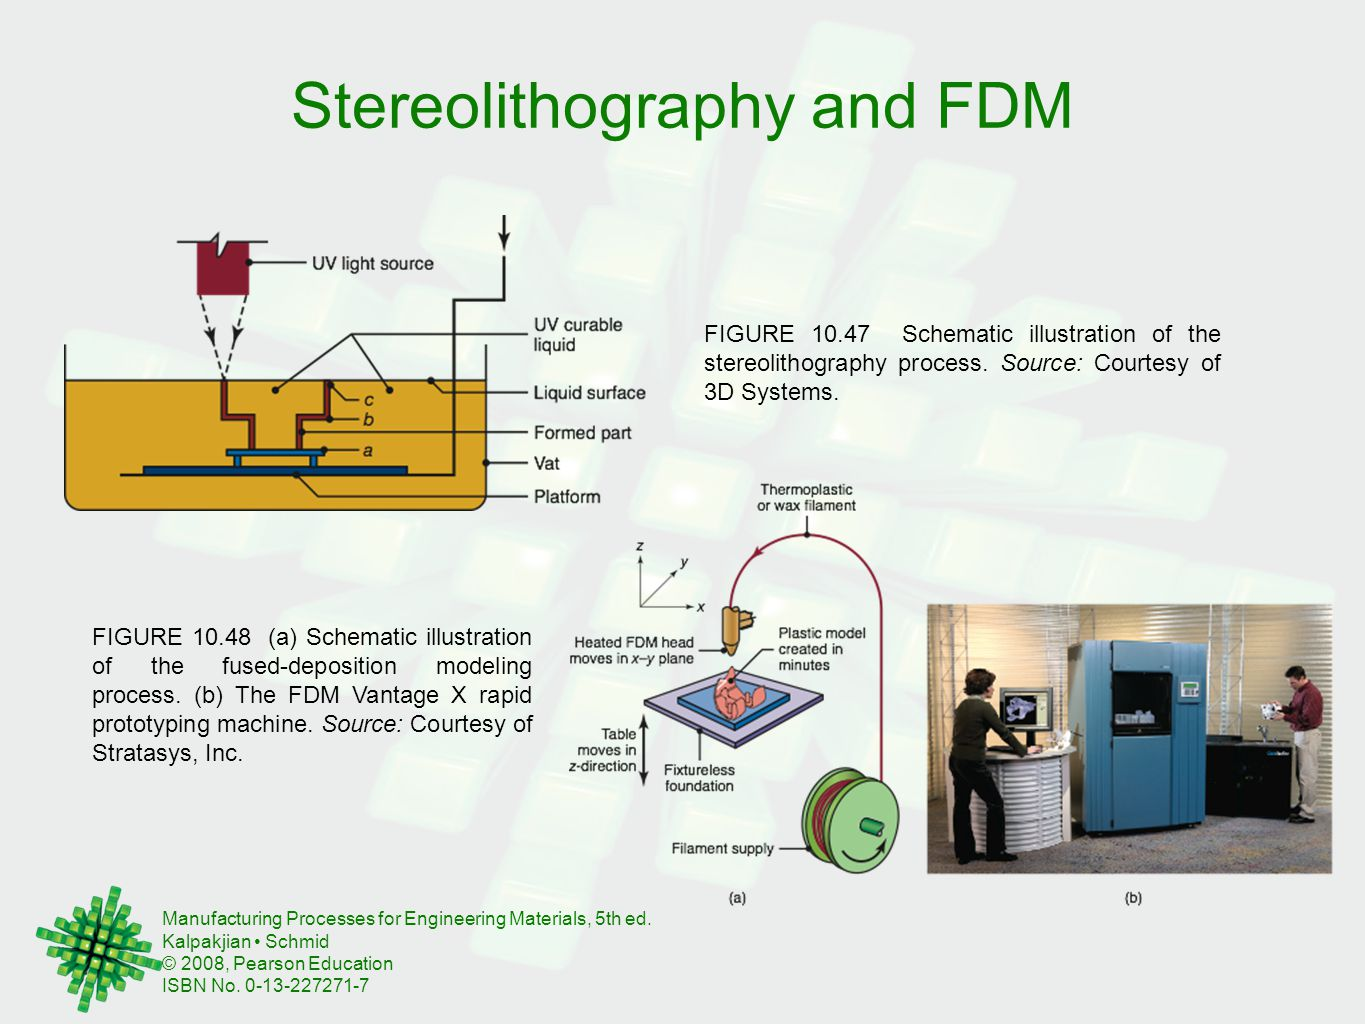 Stereolithography and FDM